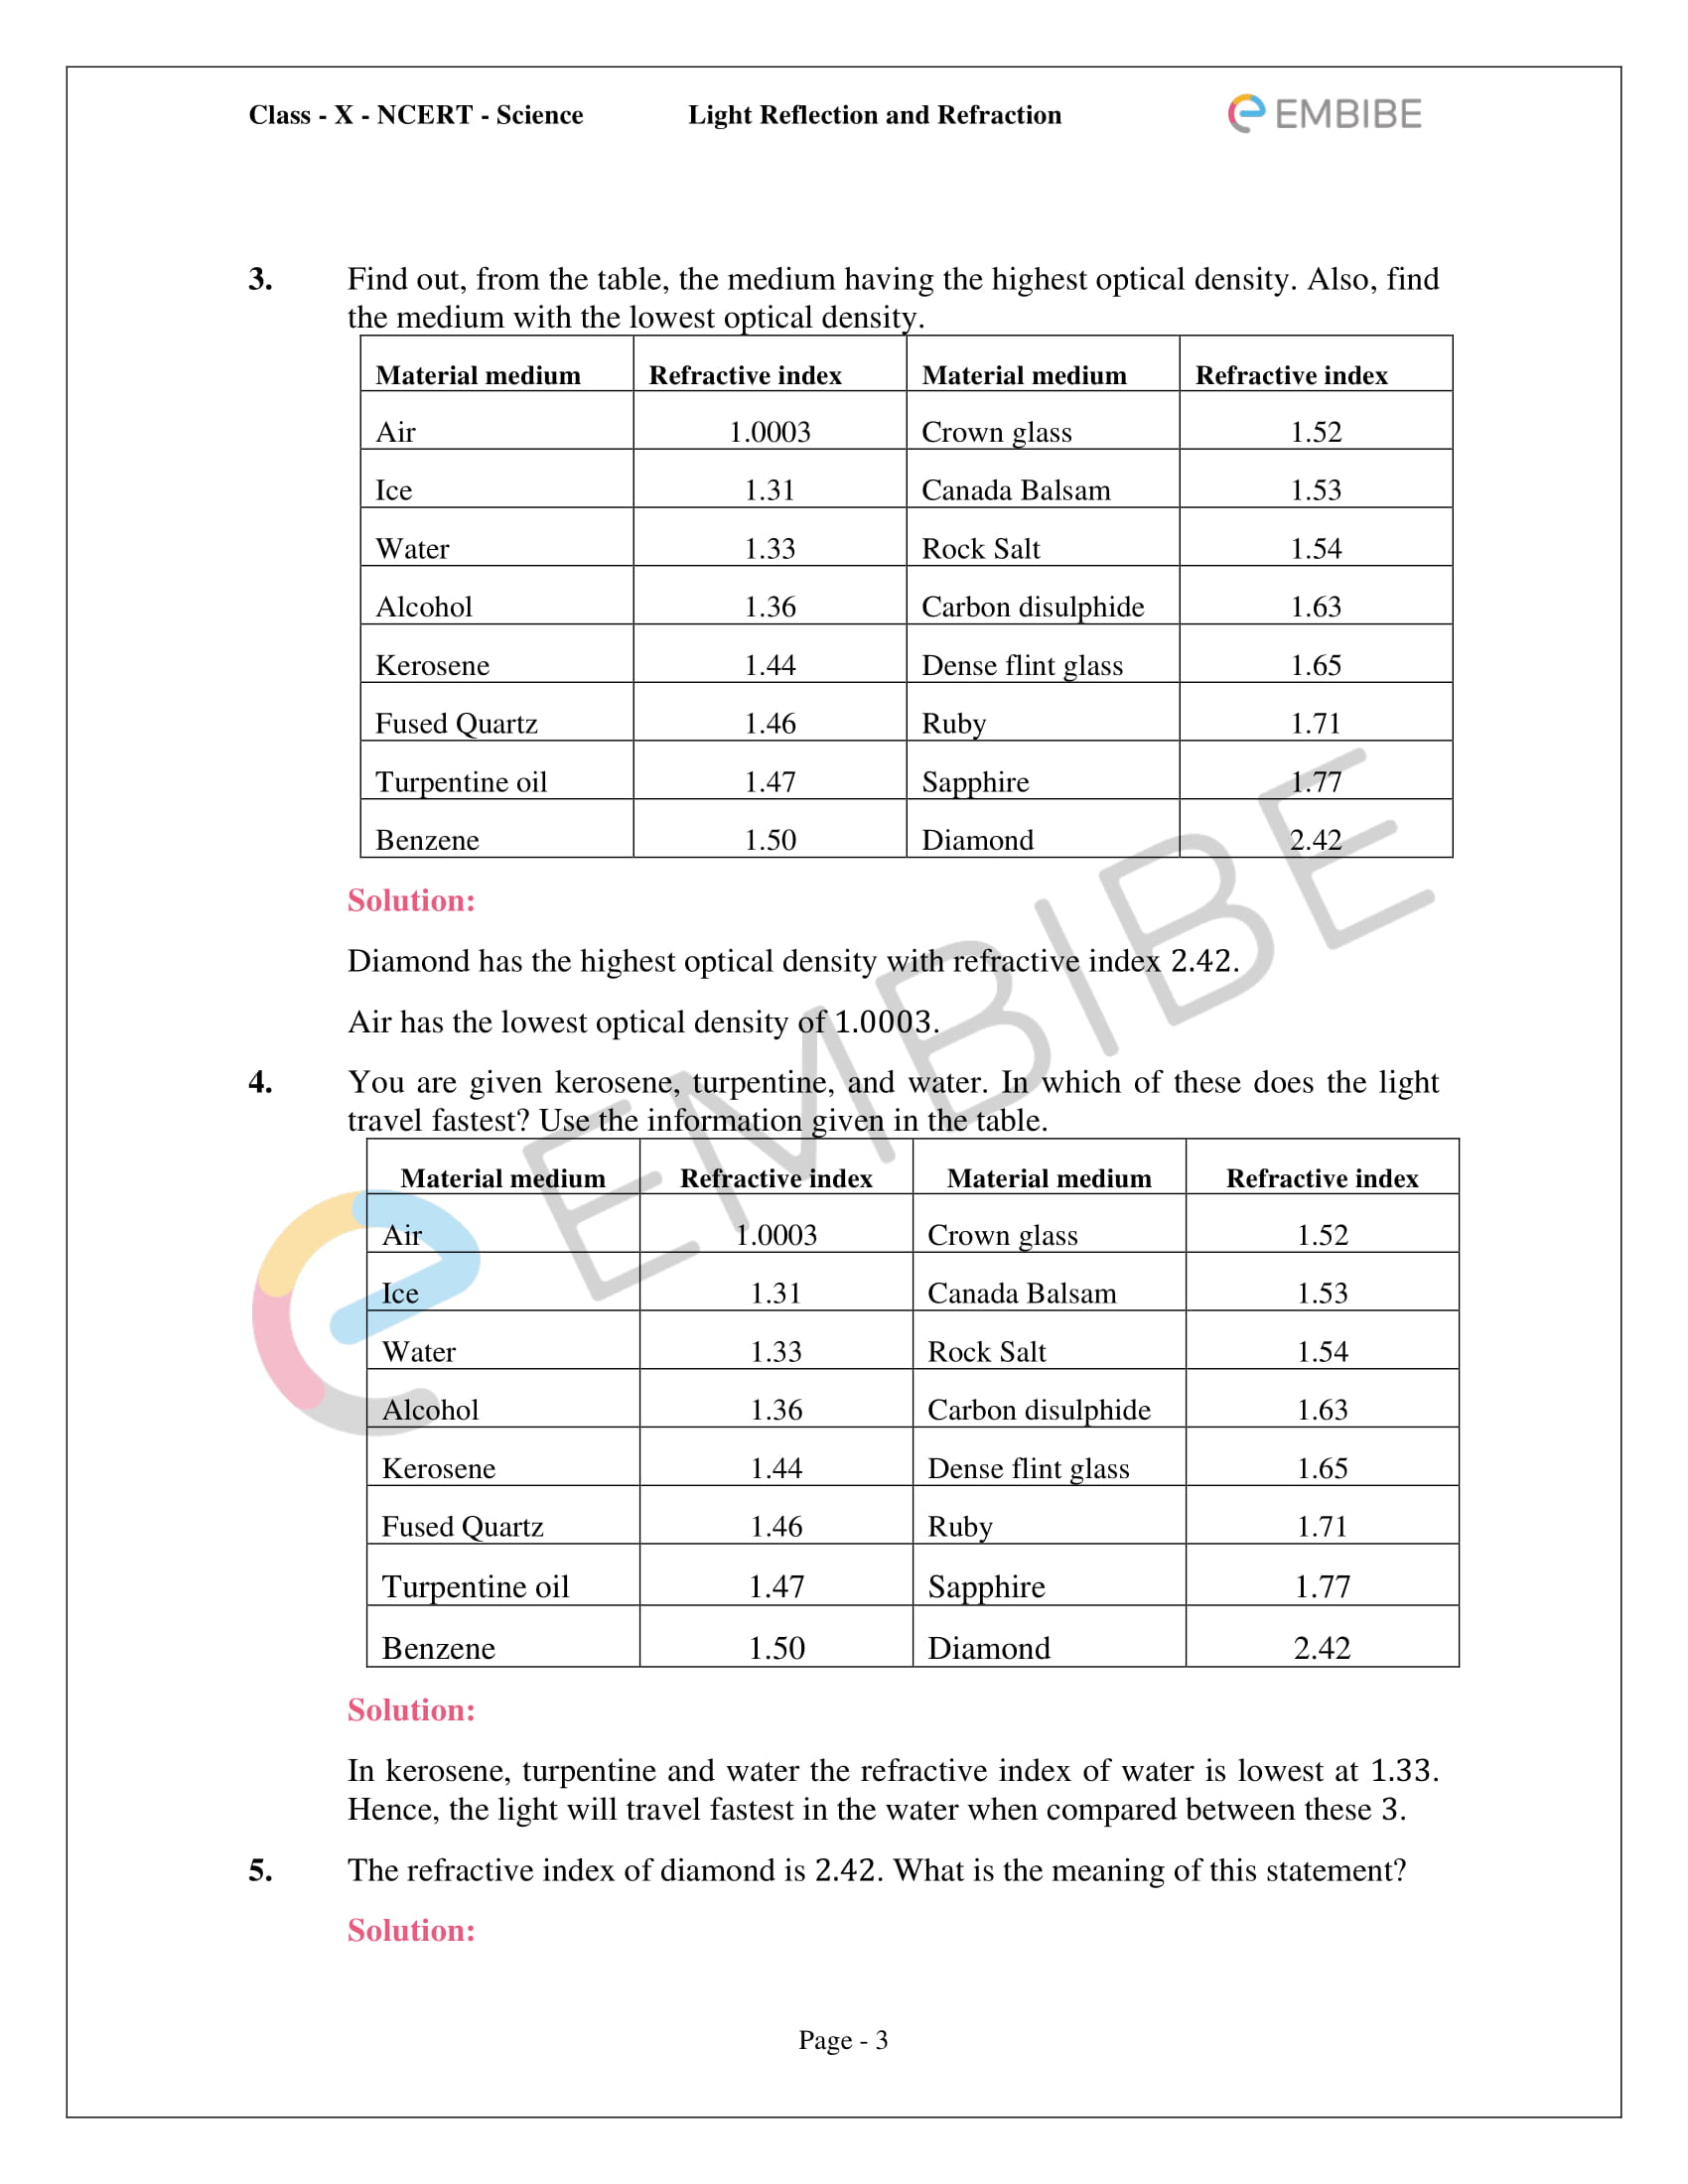 CBSE NCERT Solutions For Class 10 Science Chapter 10 - Light Reflection and Refraction - 3